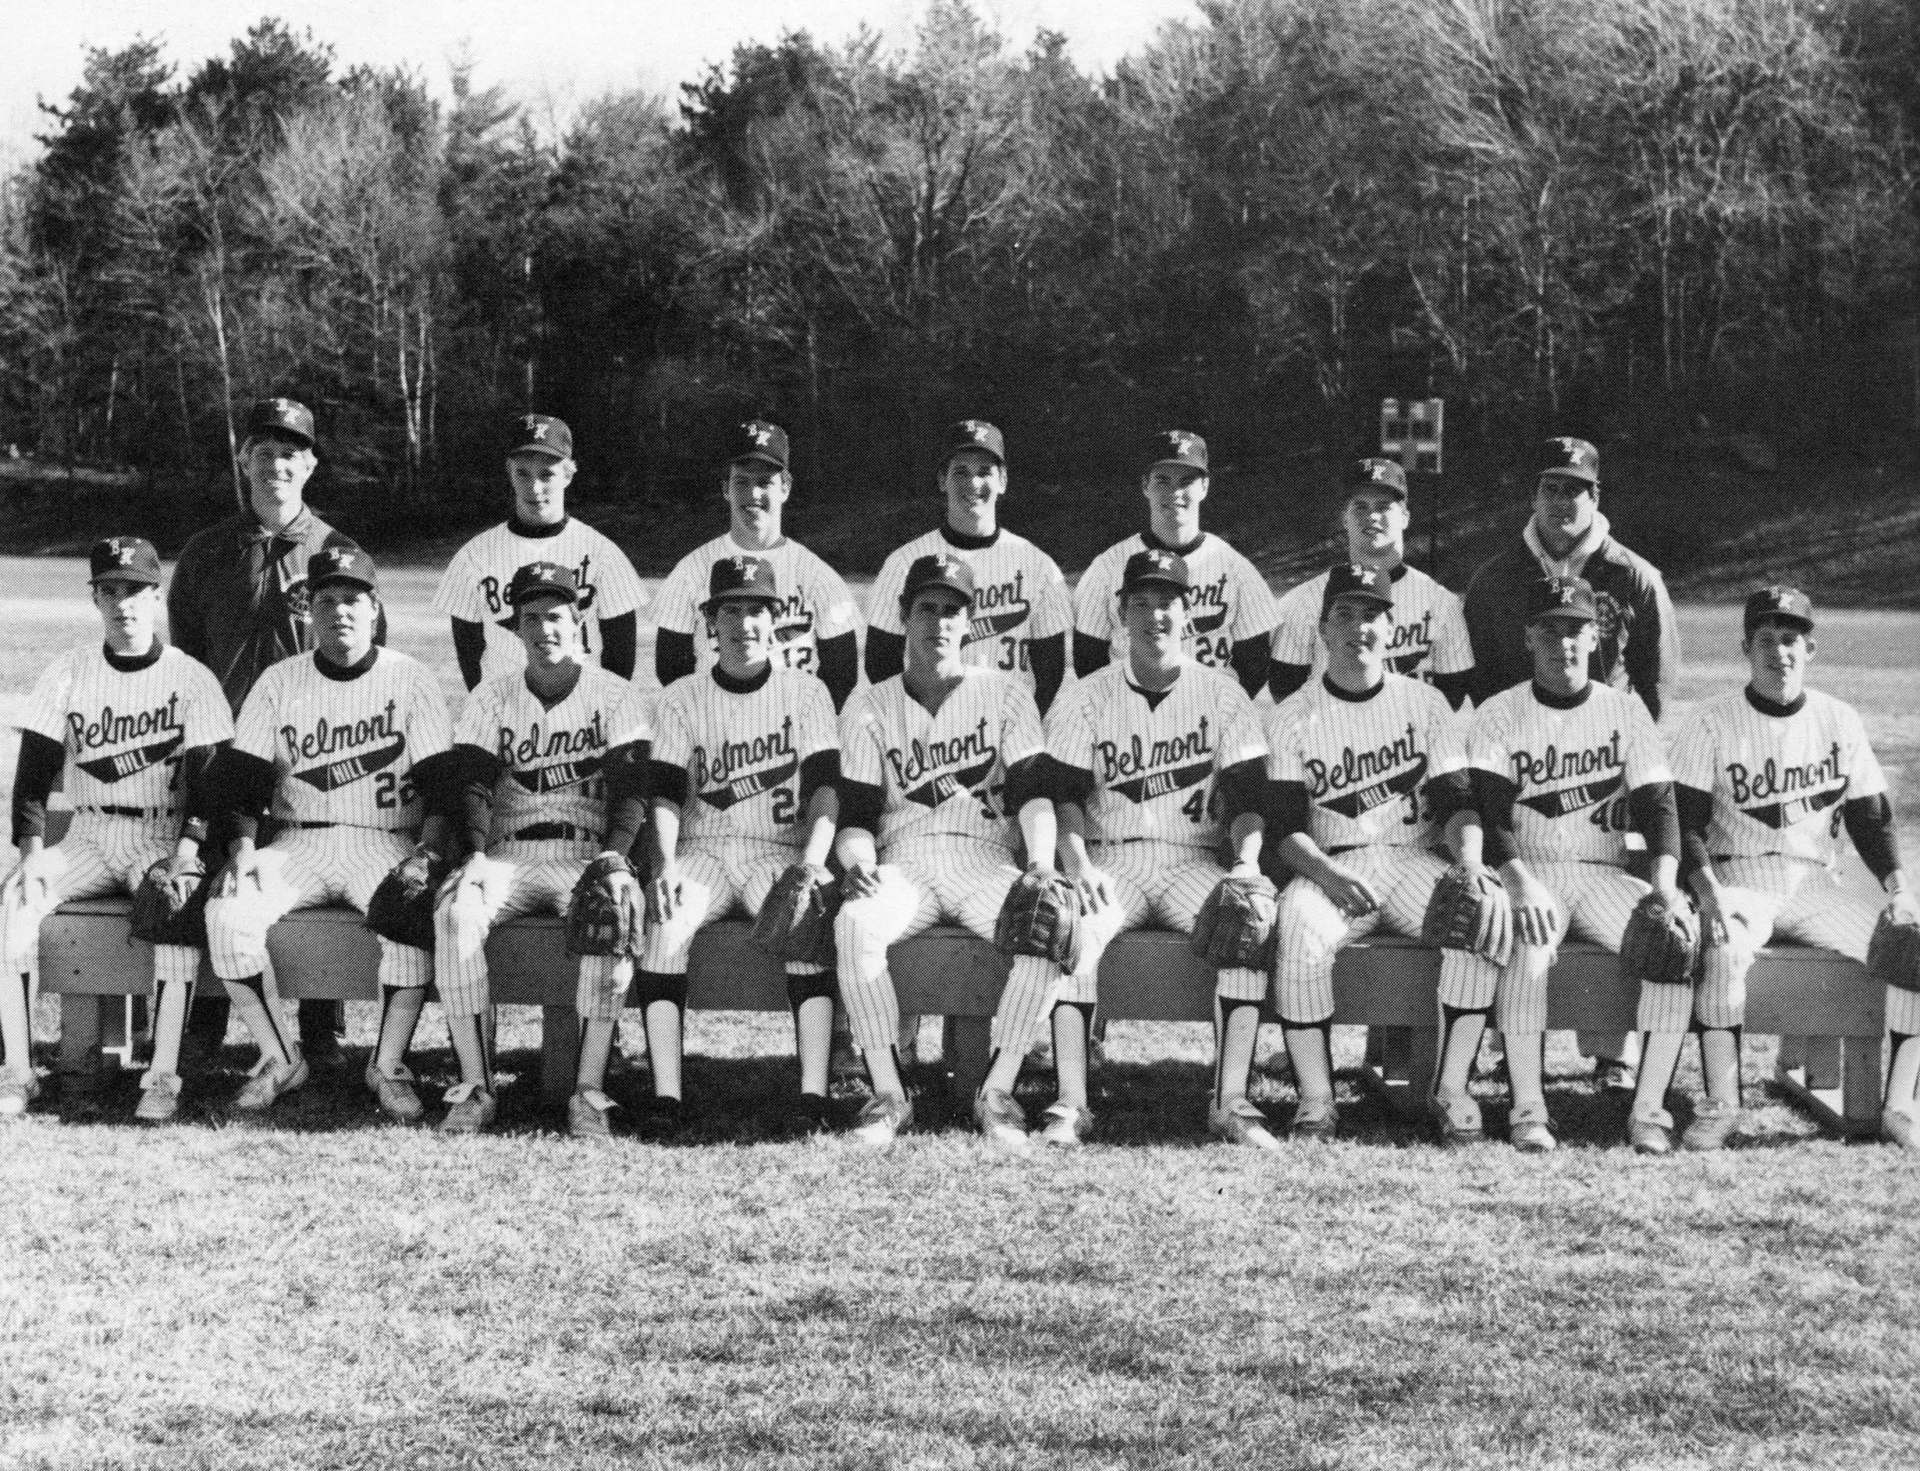 First Row: G. Lynch, B.Leary, G. Humann,F. Mooney, C. Connelley, D. Parrot, F. Bacon, M.Drucker, S. Landaud Second Row: Mr. Martin, Mr. Hardin, T. Madden, W. Averill, D. Browne, D. Sullivan, Mr.Goodband,  Missing: J. Biotti, J. Coady, W. Bac